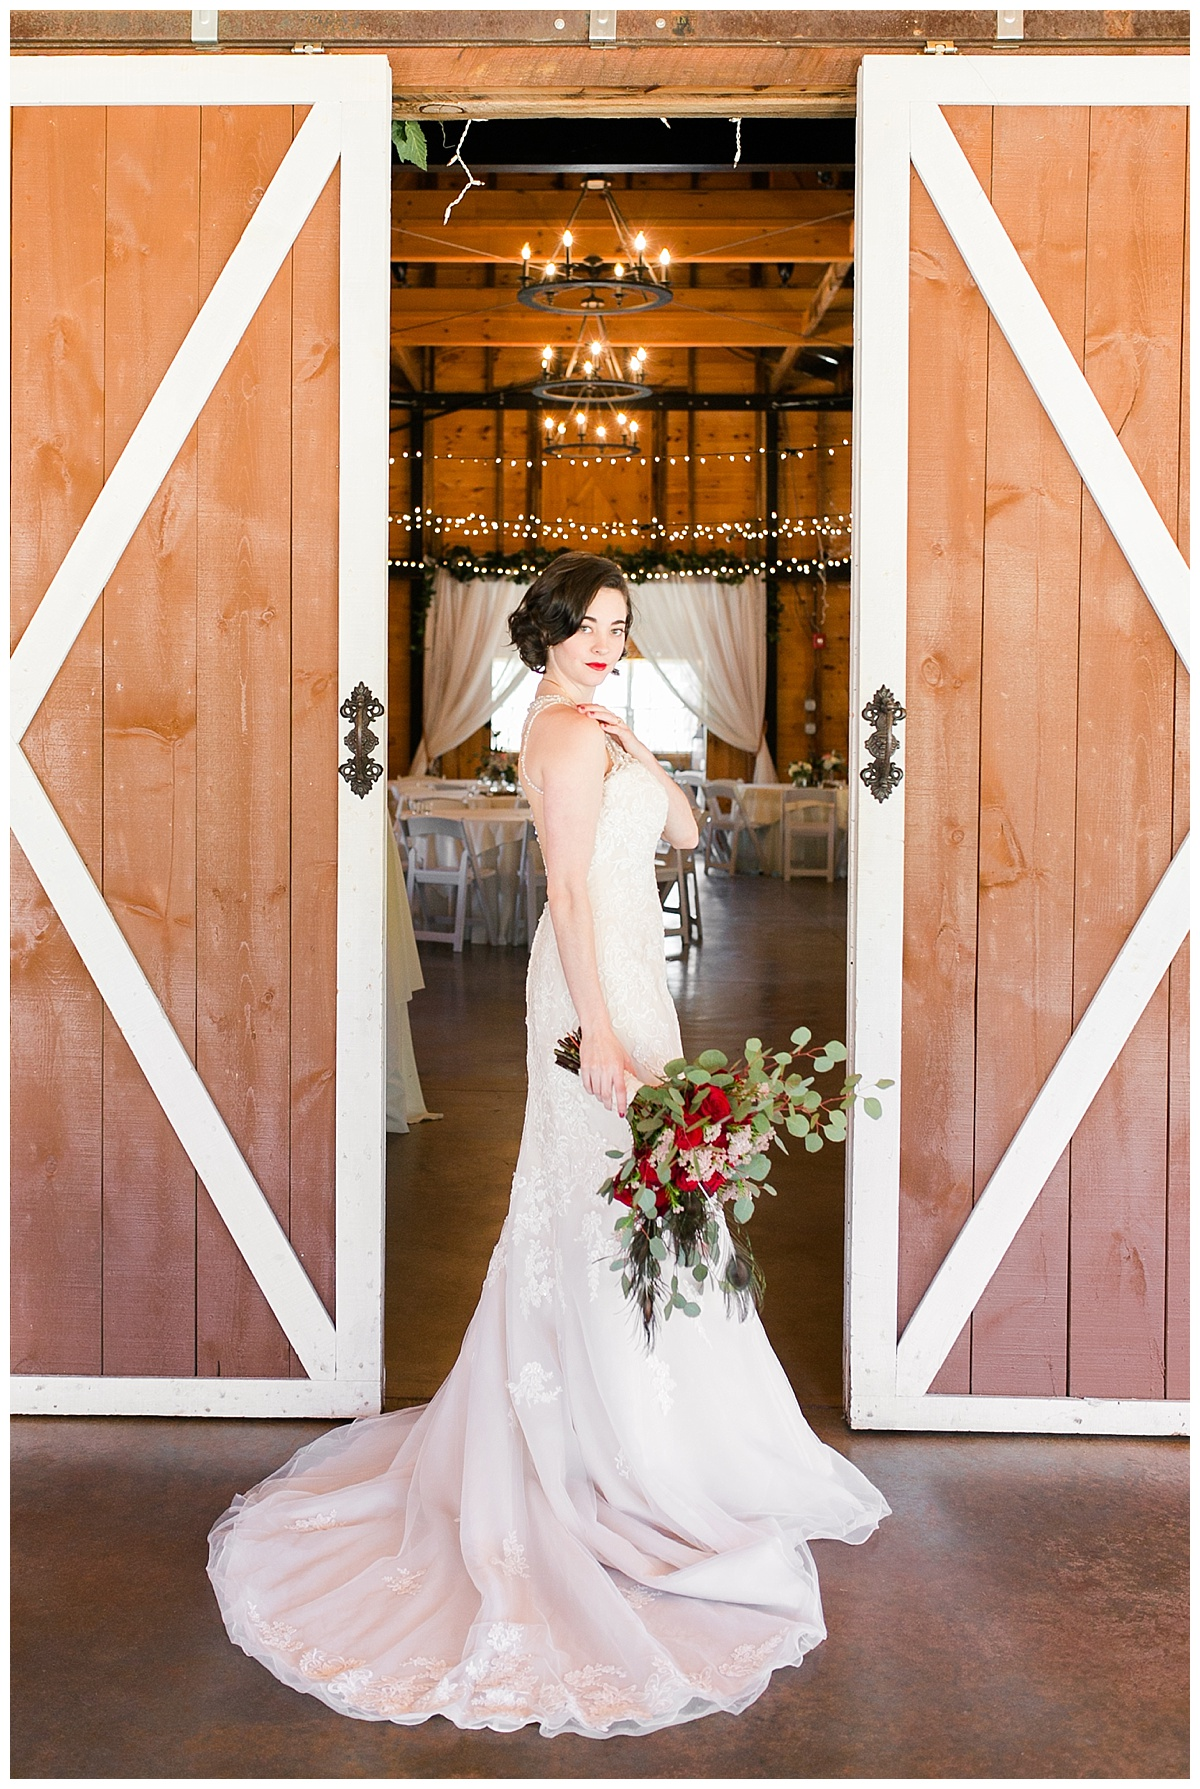 9_Oaks_Farm_Monroe_Ga_Wedding_Photograpehrs_0003.jpg